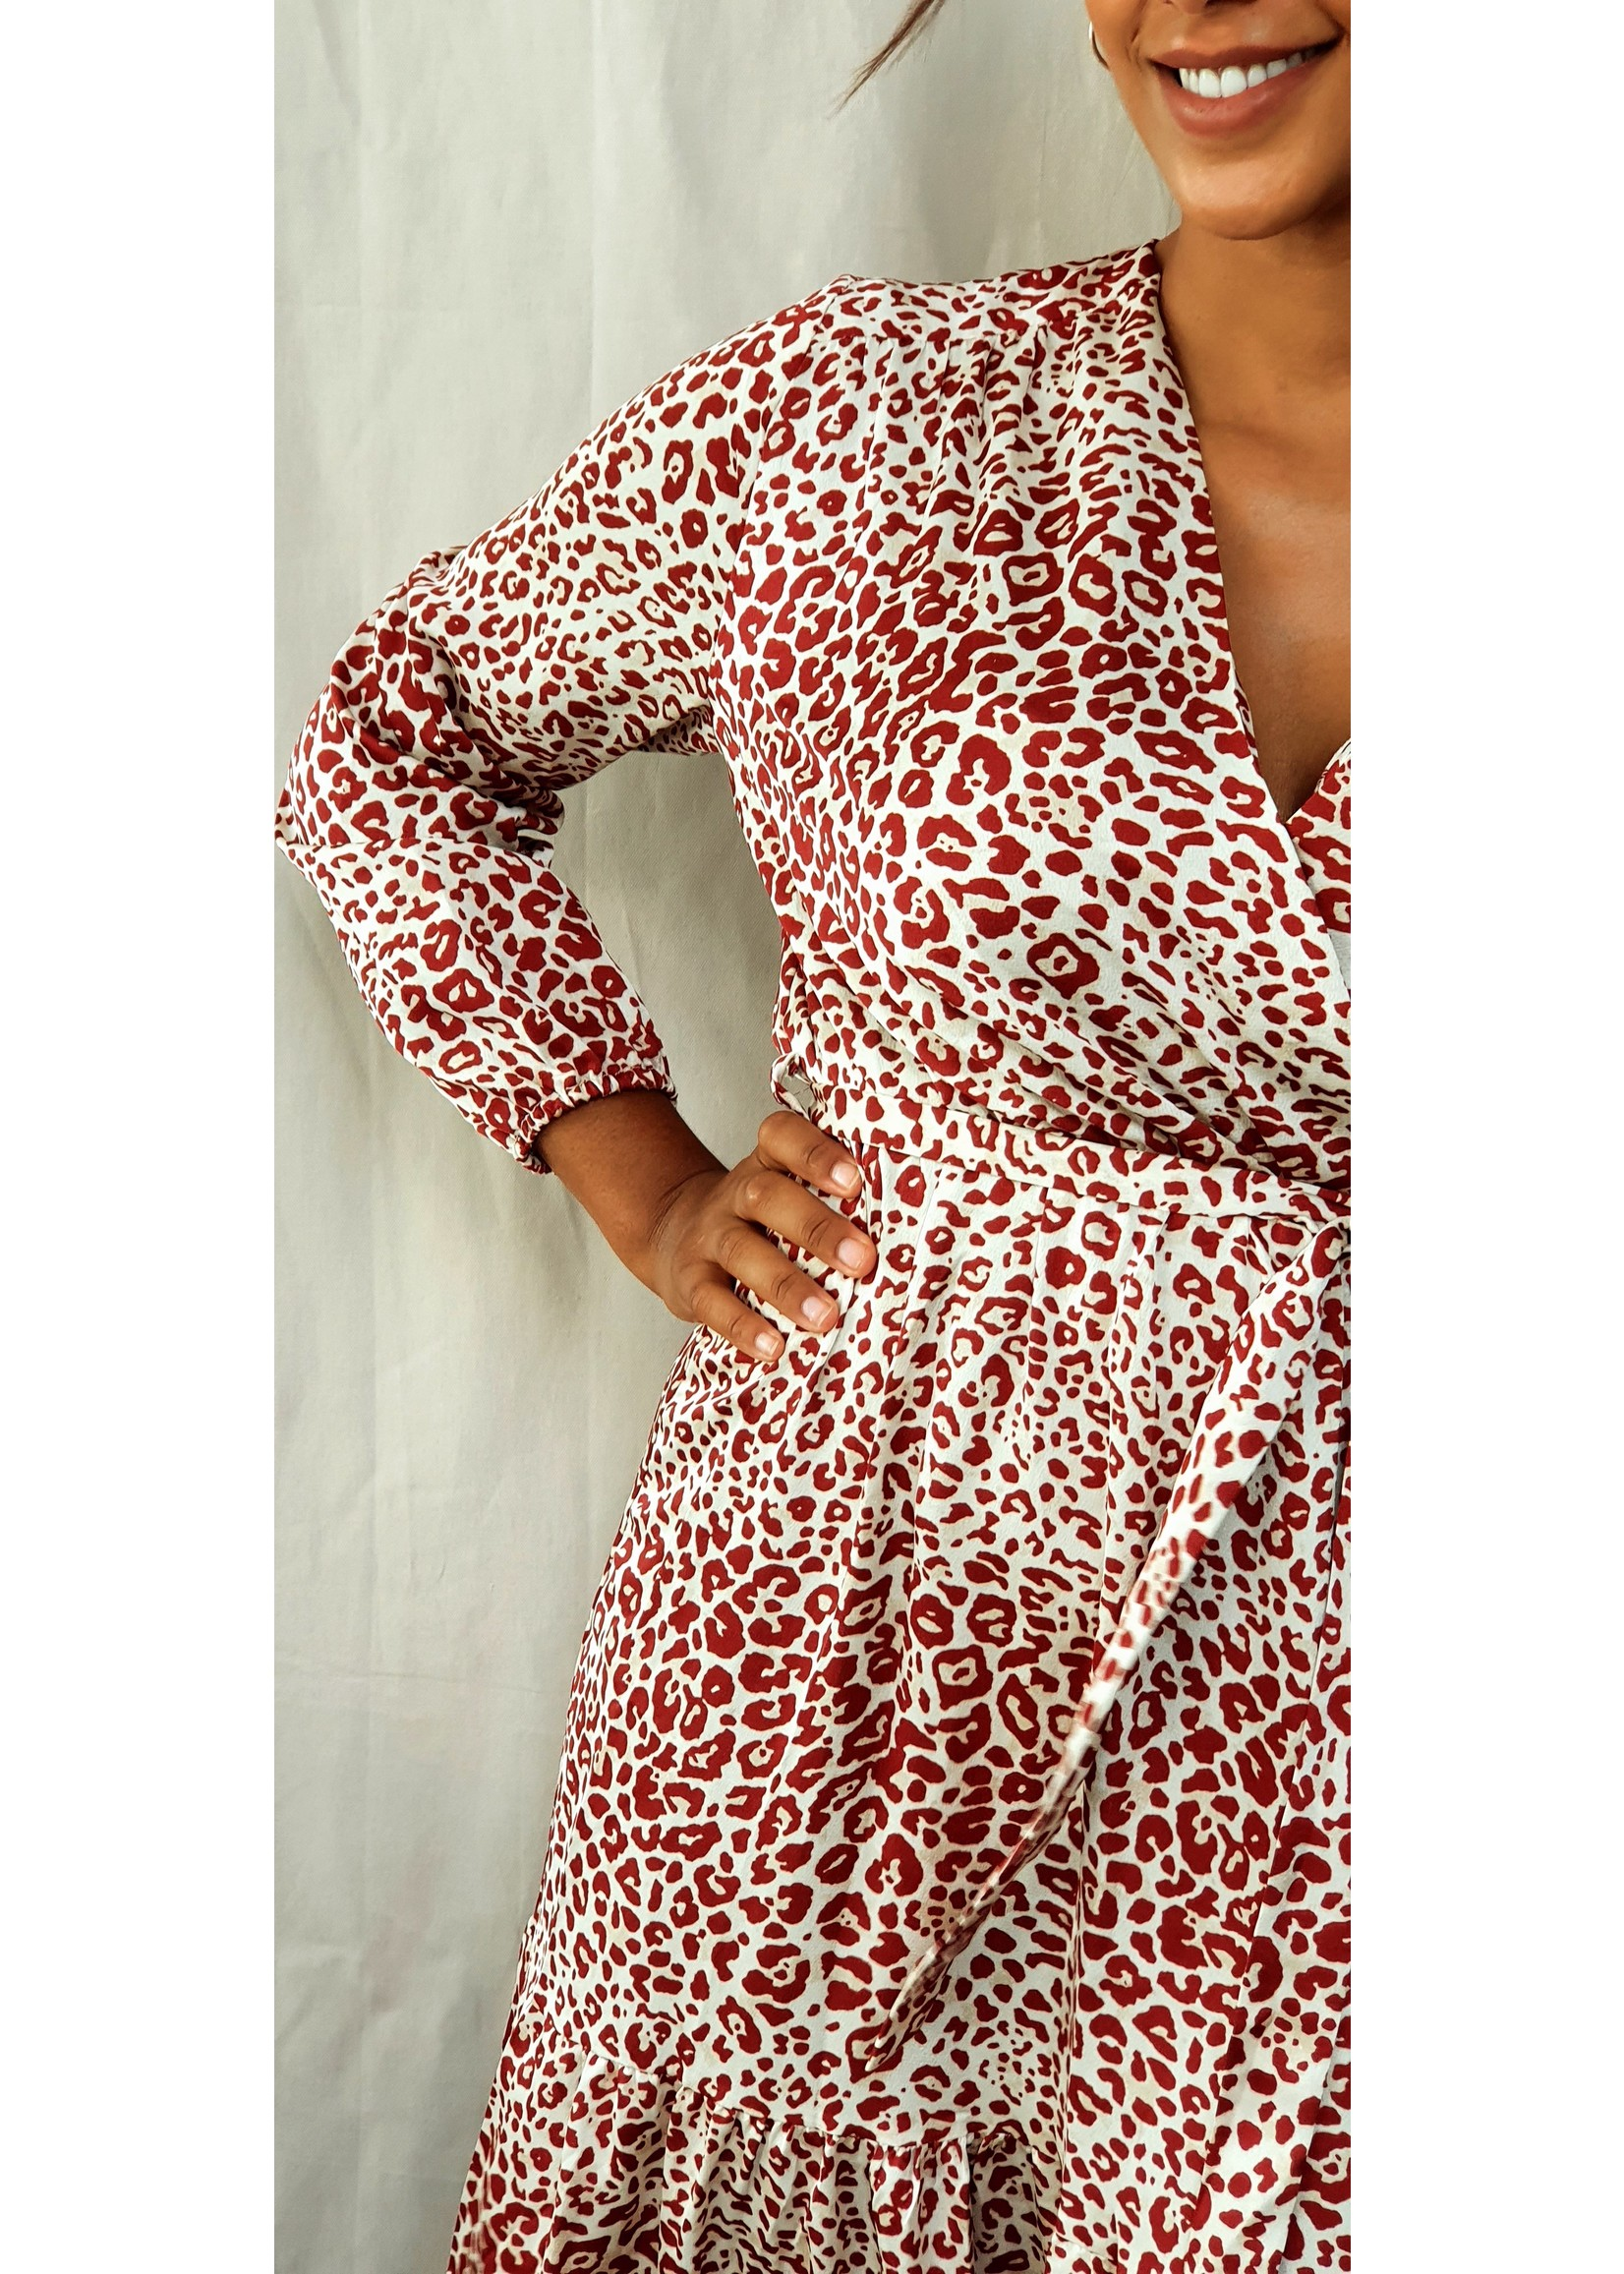 With A touch of leopard dress